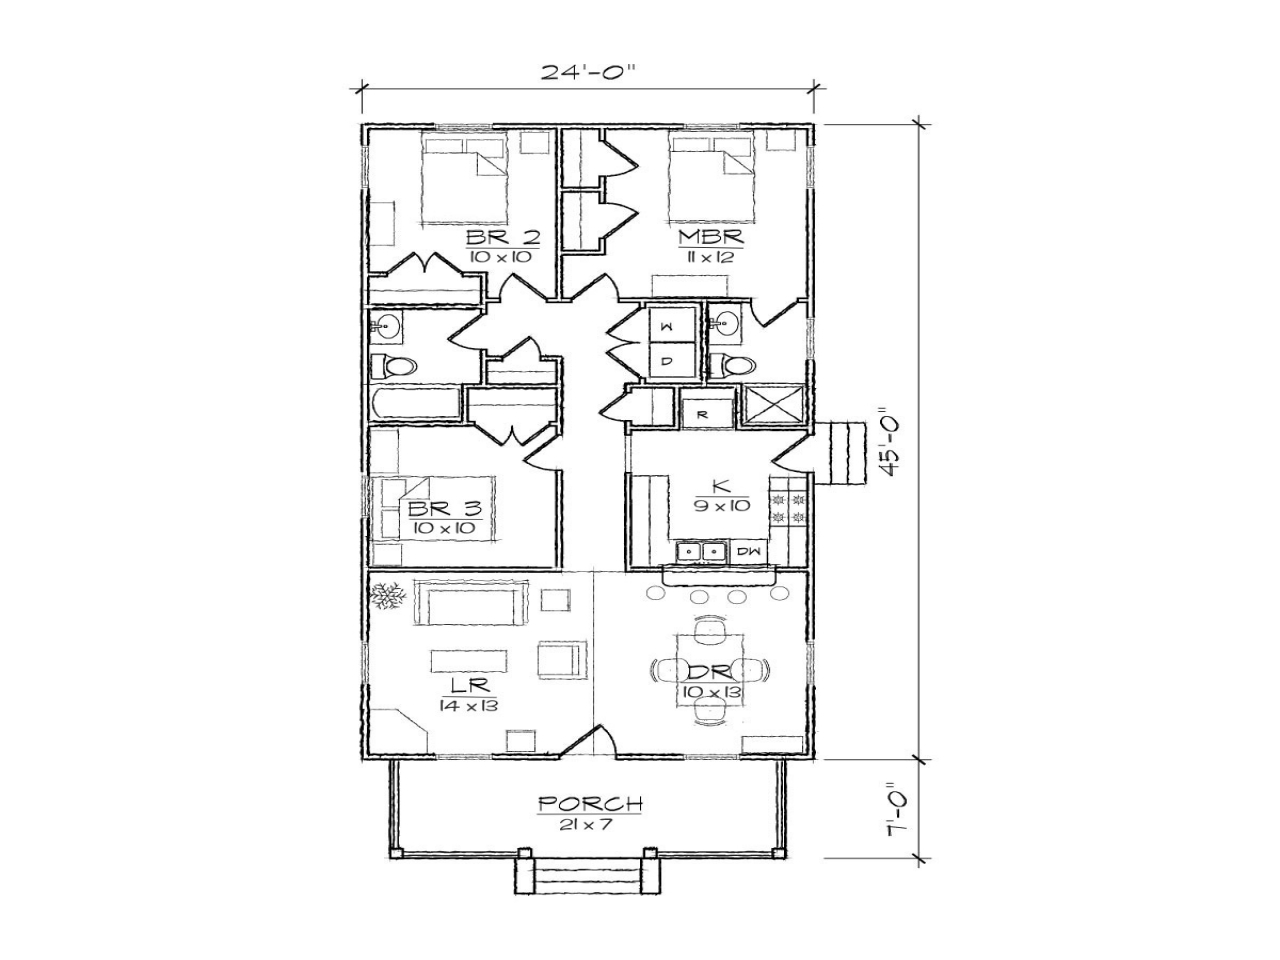 narrow lot traditional house plan, narrow house plans with side entry garage, narrow small houses, narrow townhouse plans with garage, pool house with garage, narrow houses floor plans, house with side load garage, narrow house designs, narrow lot modern house, narrow lot houses with garage in back, cottage home plans with garage, narrow house plan big lots, narrow lot rooftop deck, large house plans with rear garage, narrow space bathroom towers, french country house plans with rear garage, rancher house plans side garage, narrow homes, narrow house plans with front garage, on narrow lot house plans with garage in rear